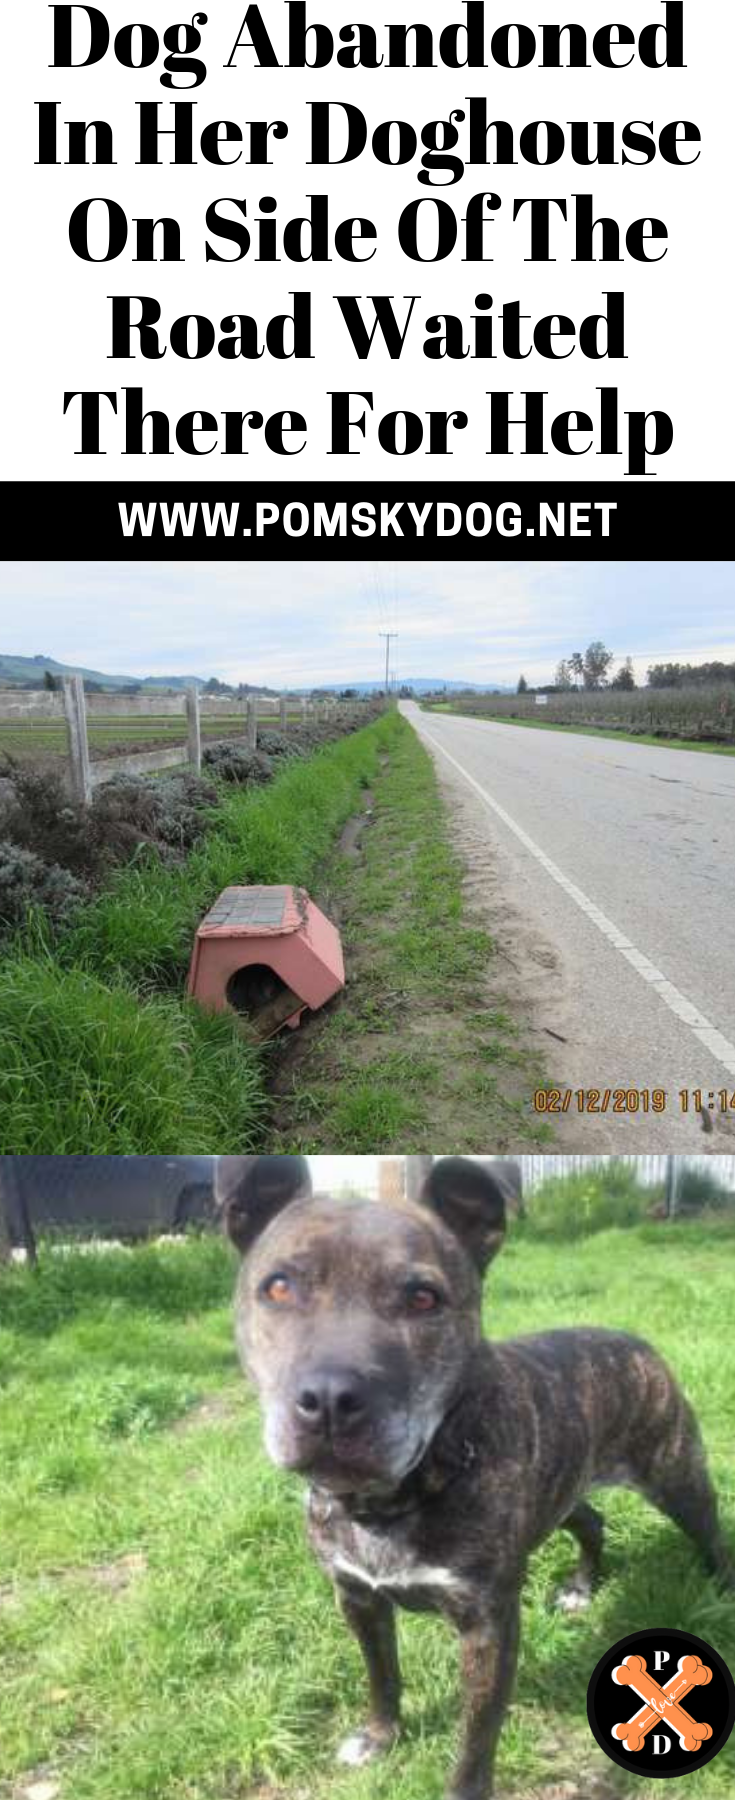 Dog Abandoned In Her Doghouse On Side Of The Road Waited There For Help Dogs Dog Houses Animal Stories